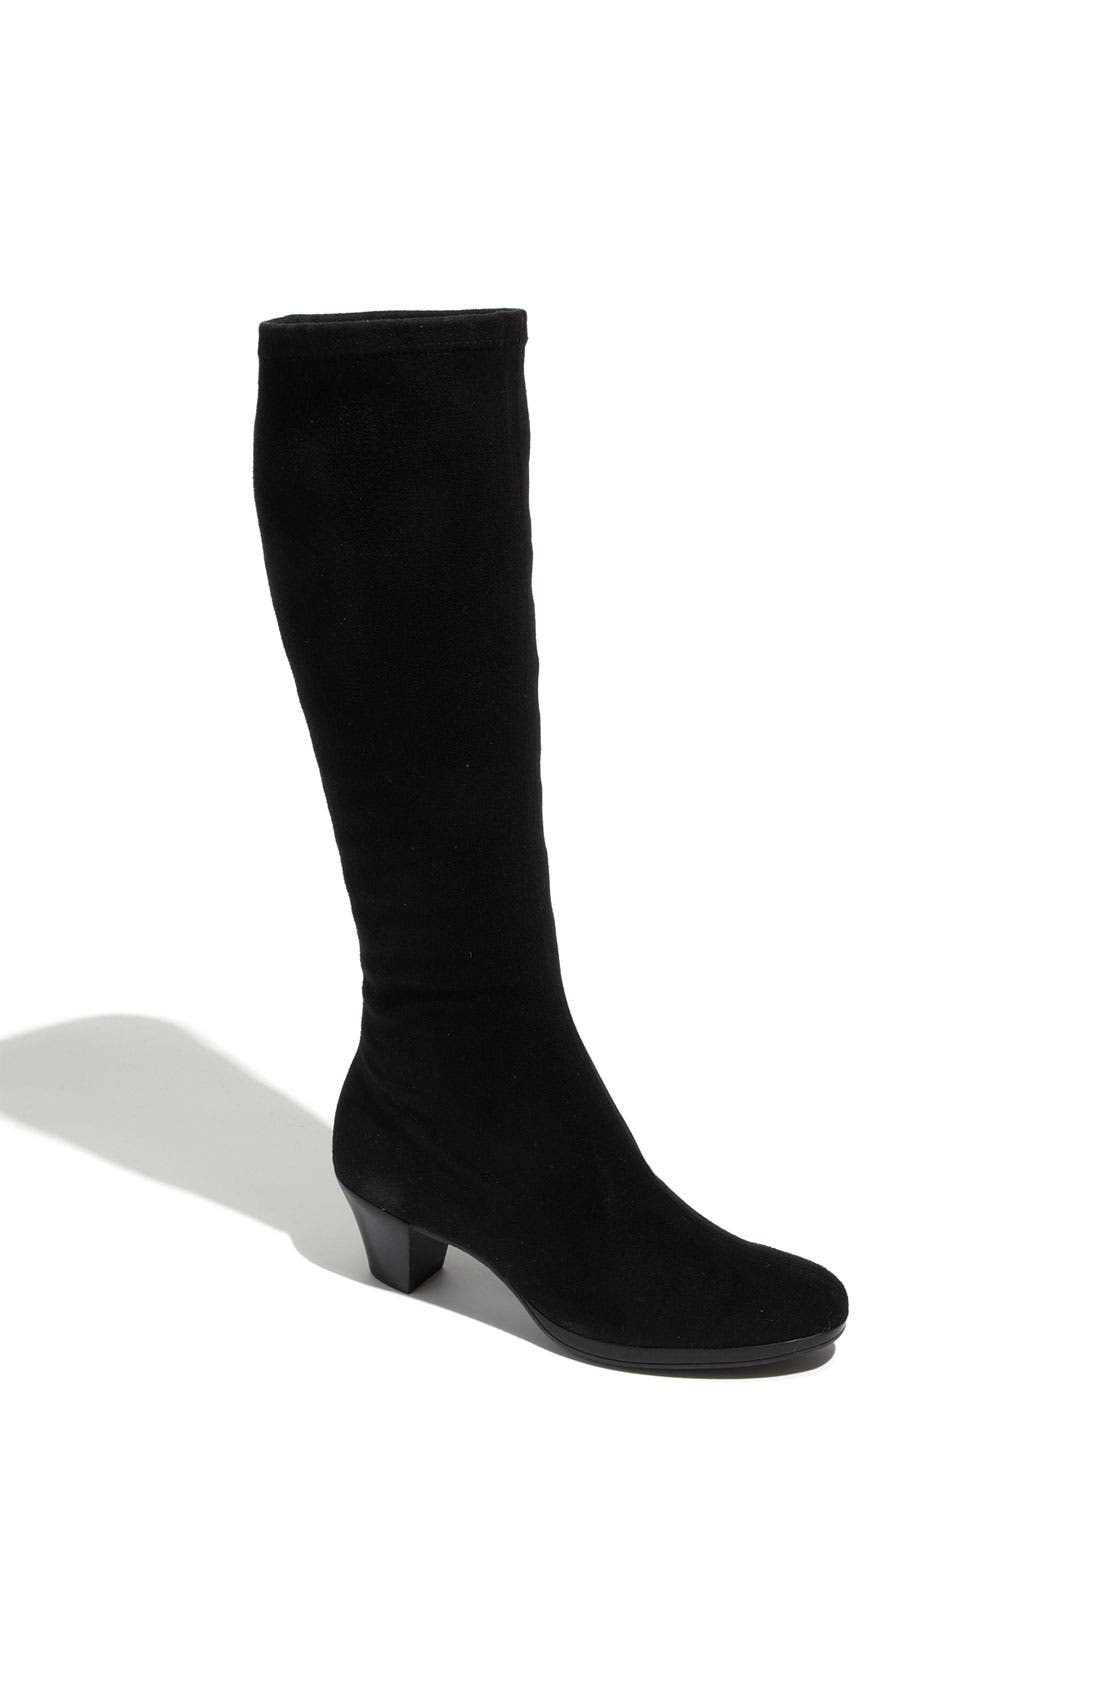 Main Image - Munro 'Sophia' Stretch Boot